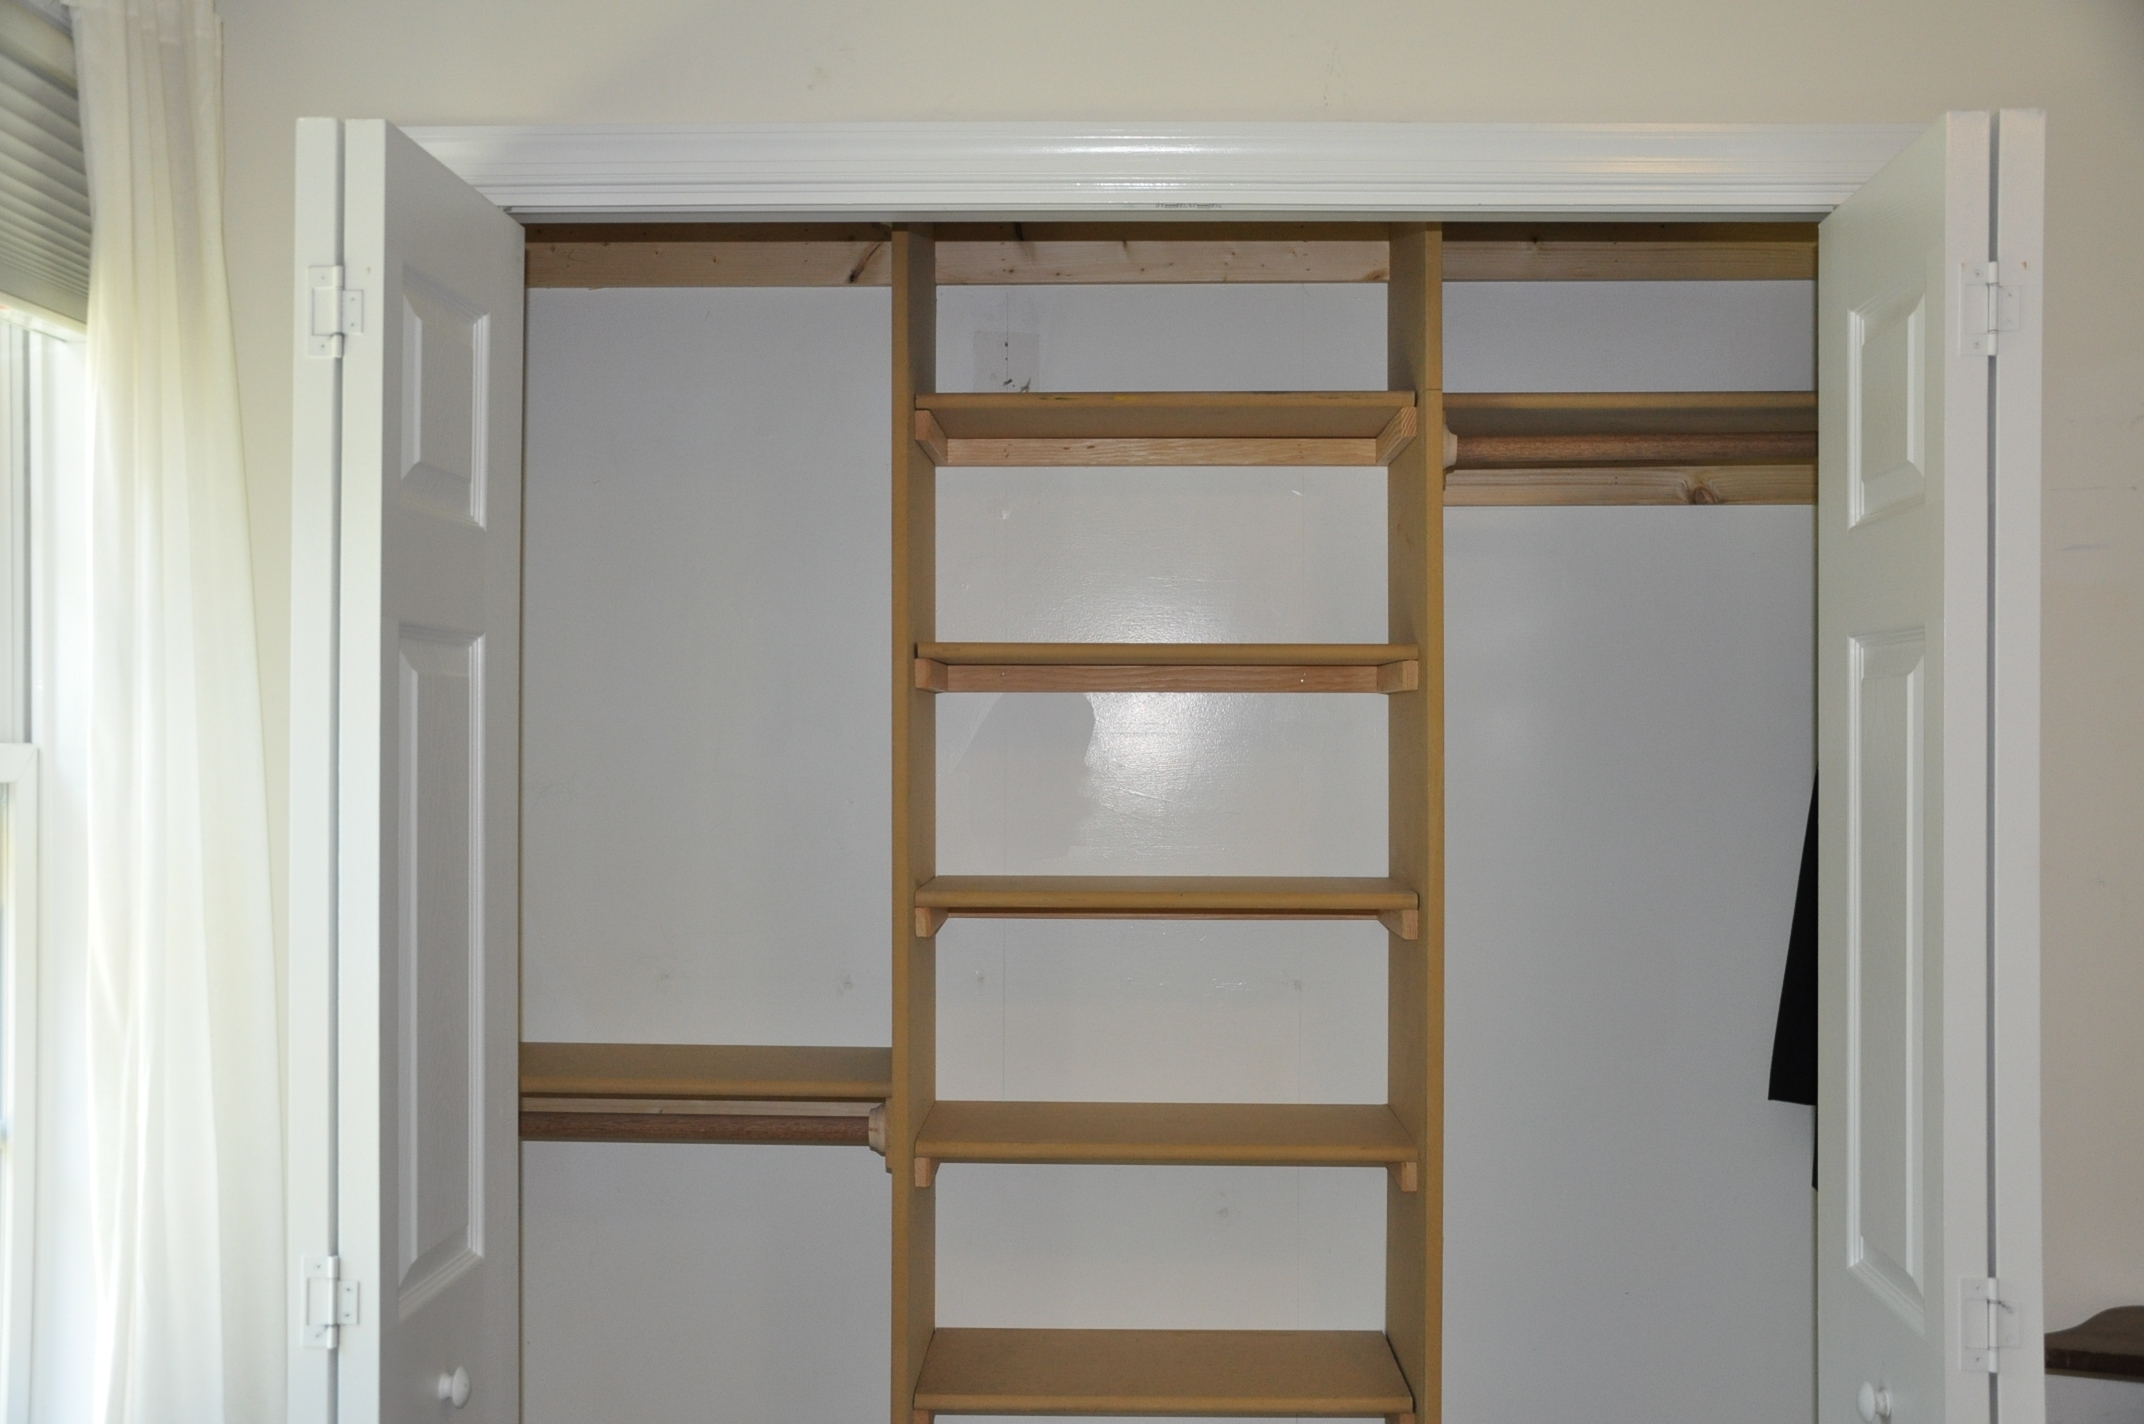 Reach In Closet Design Ideas the closet design on the left is ideal for an infant or toddler the design on the right shows how the closet can be easily reconfigured and new features Small Bedroom Closet Design Remodel Interior Planning House Ideas